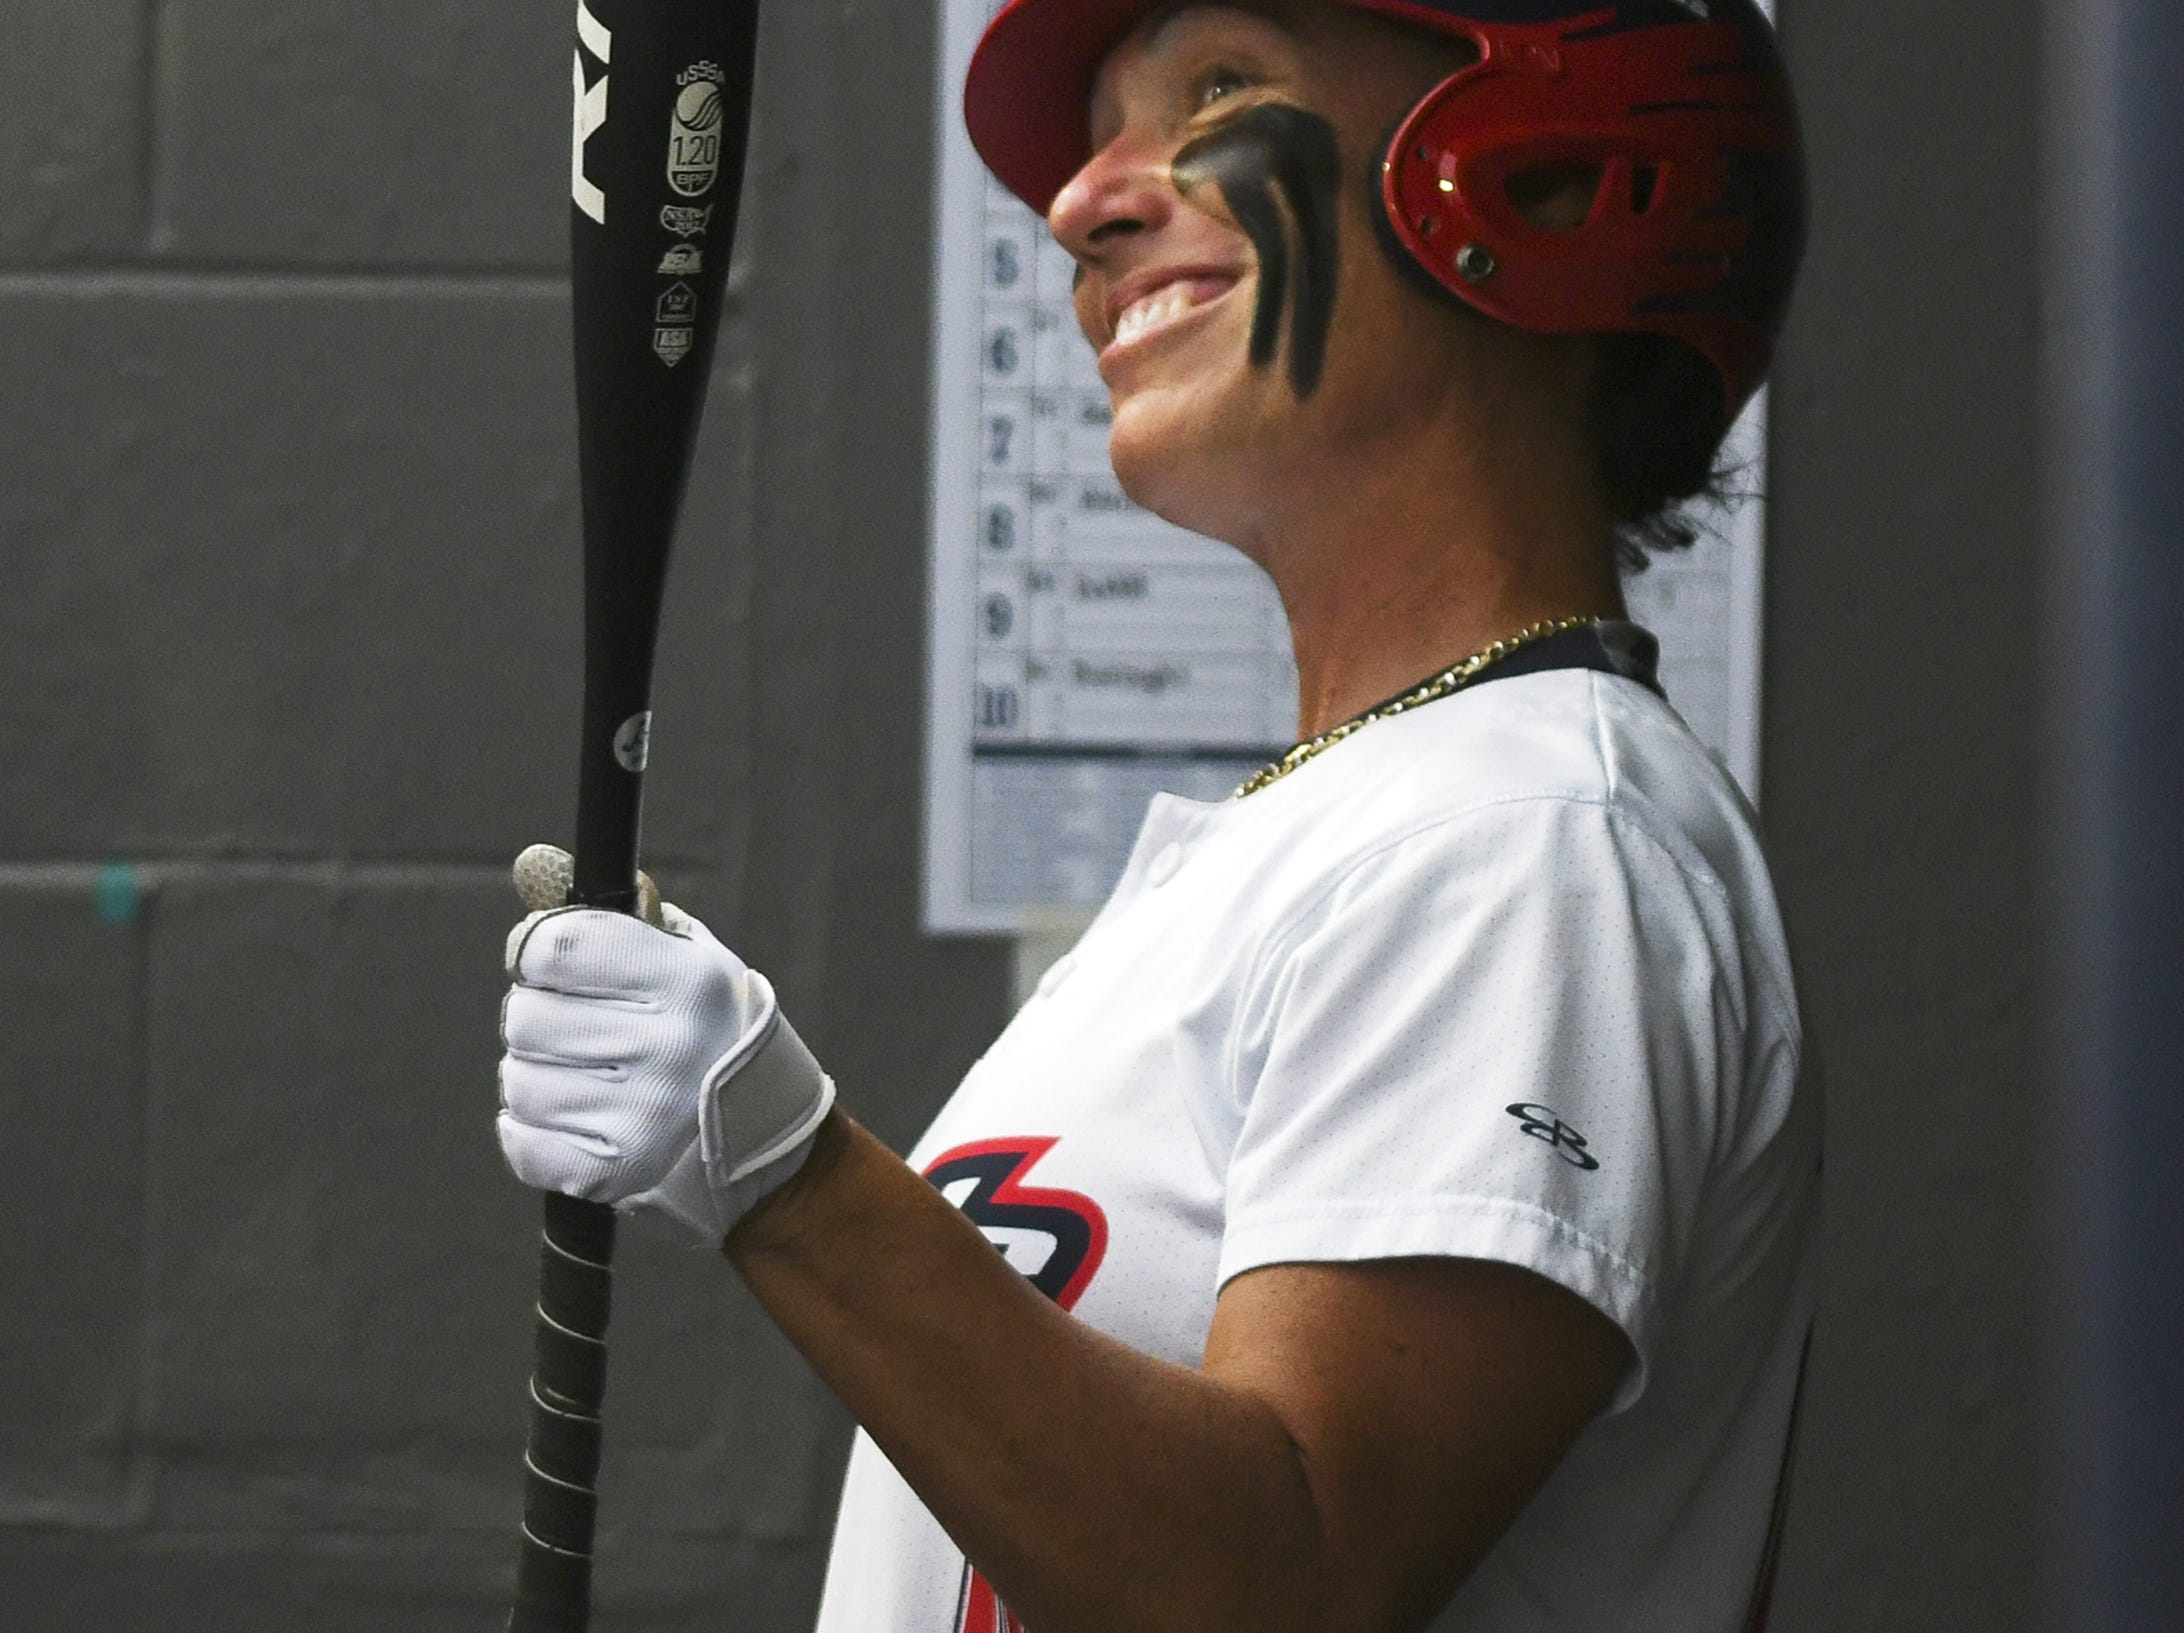 Kelly Kretschman prepares to take her turn at bat during Friday's game in Viera.